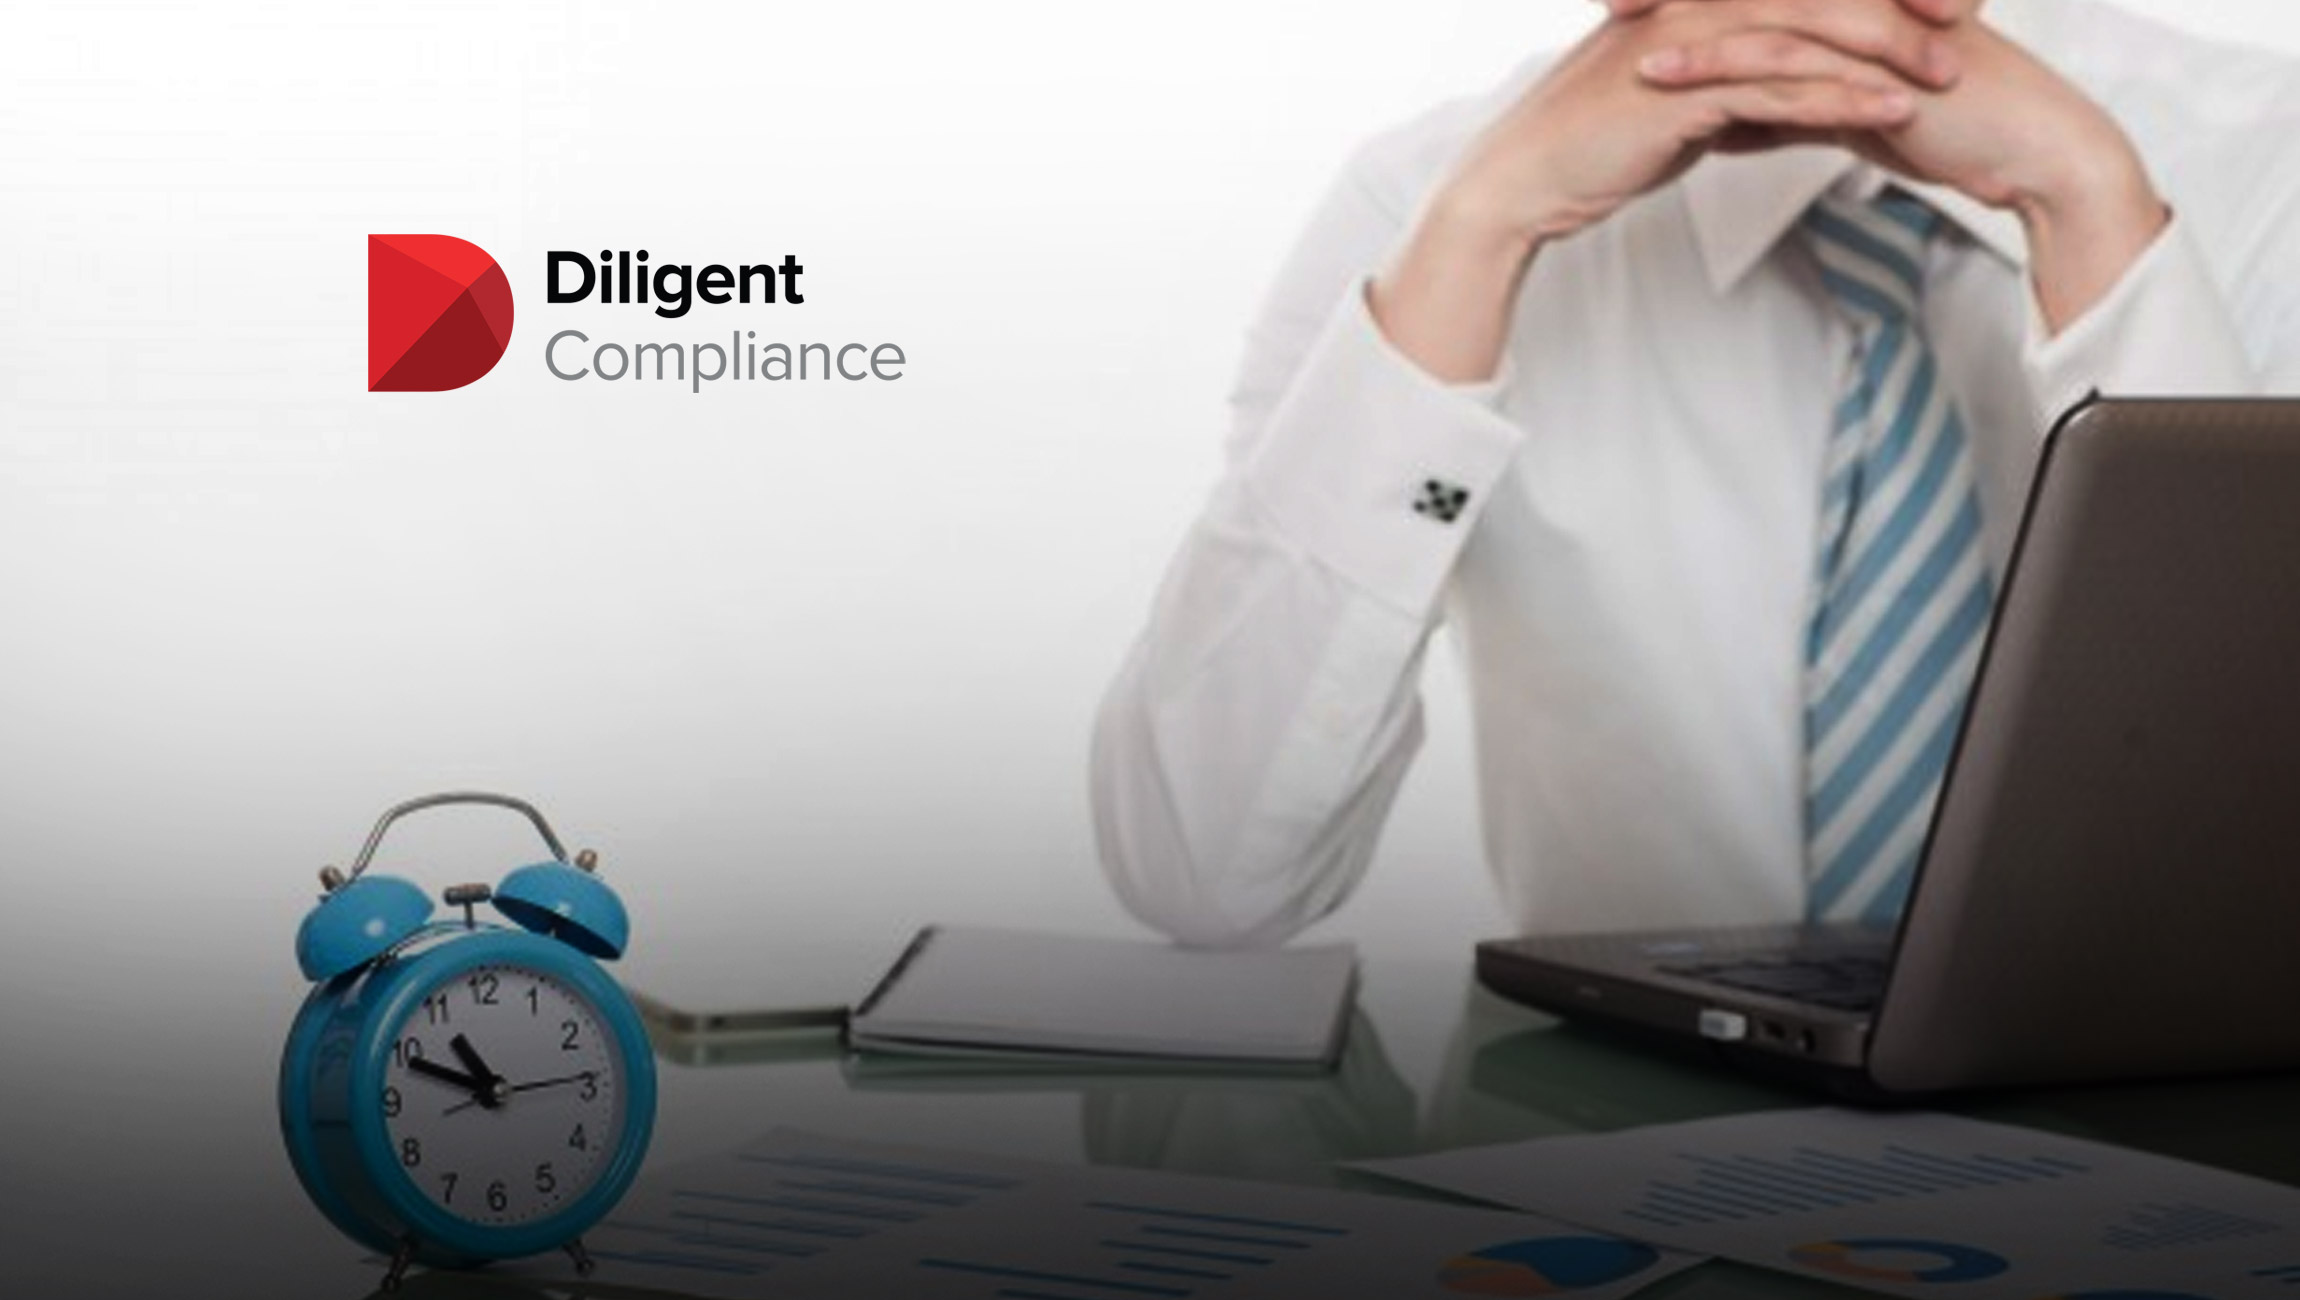 Modern Governance 11.0: Diligent Launches New Offering, 'Diligent Compliance', to Help Organizations Confidently Manage Risk and Ensure Business Continuity during Uncertain Times